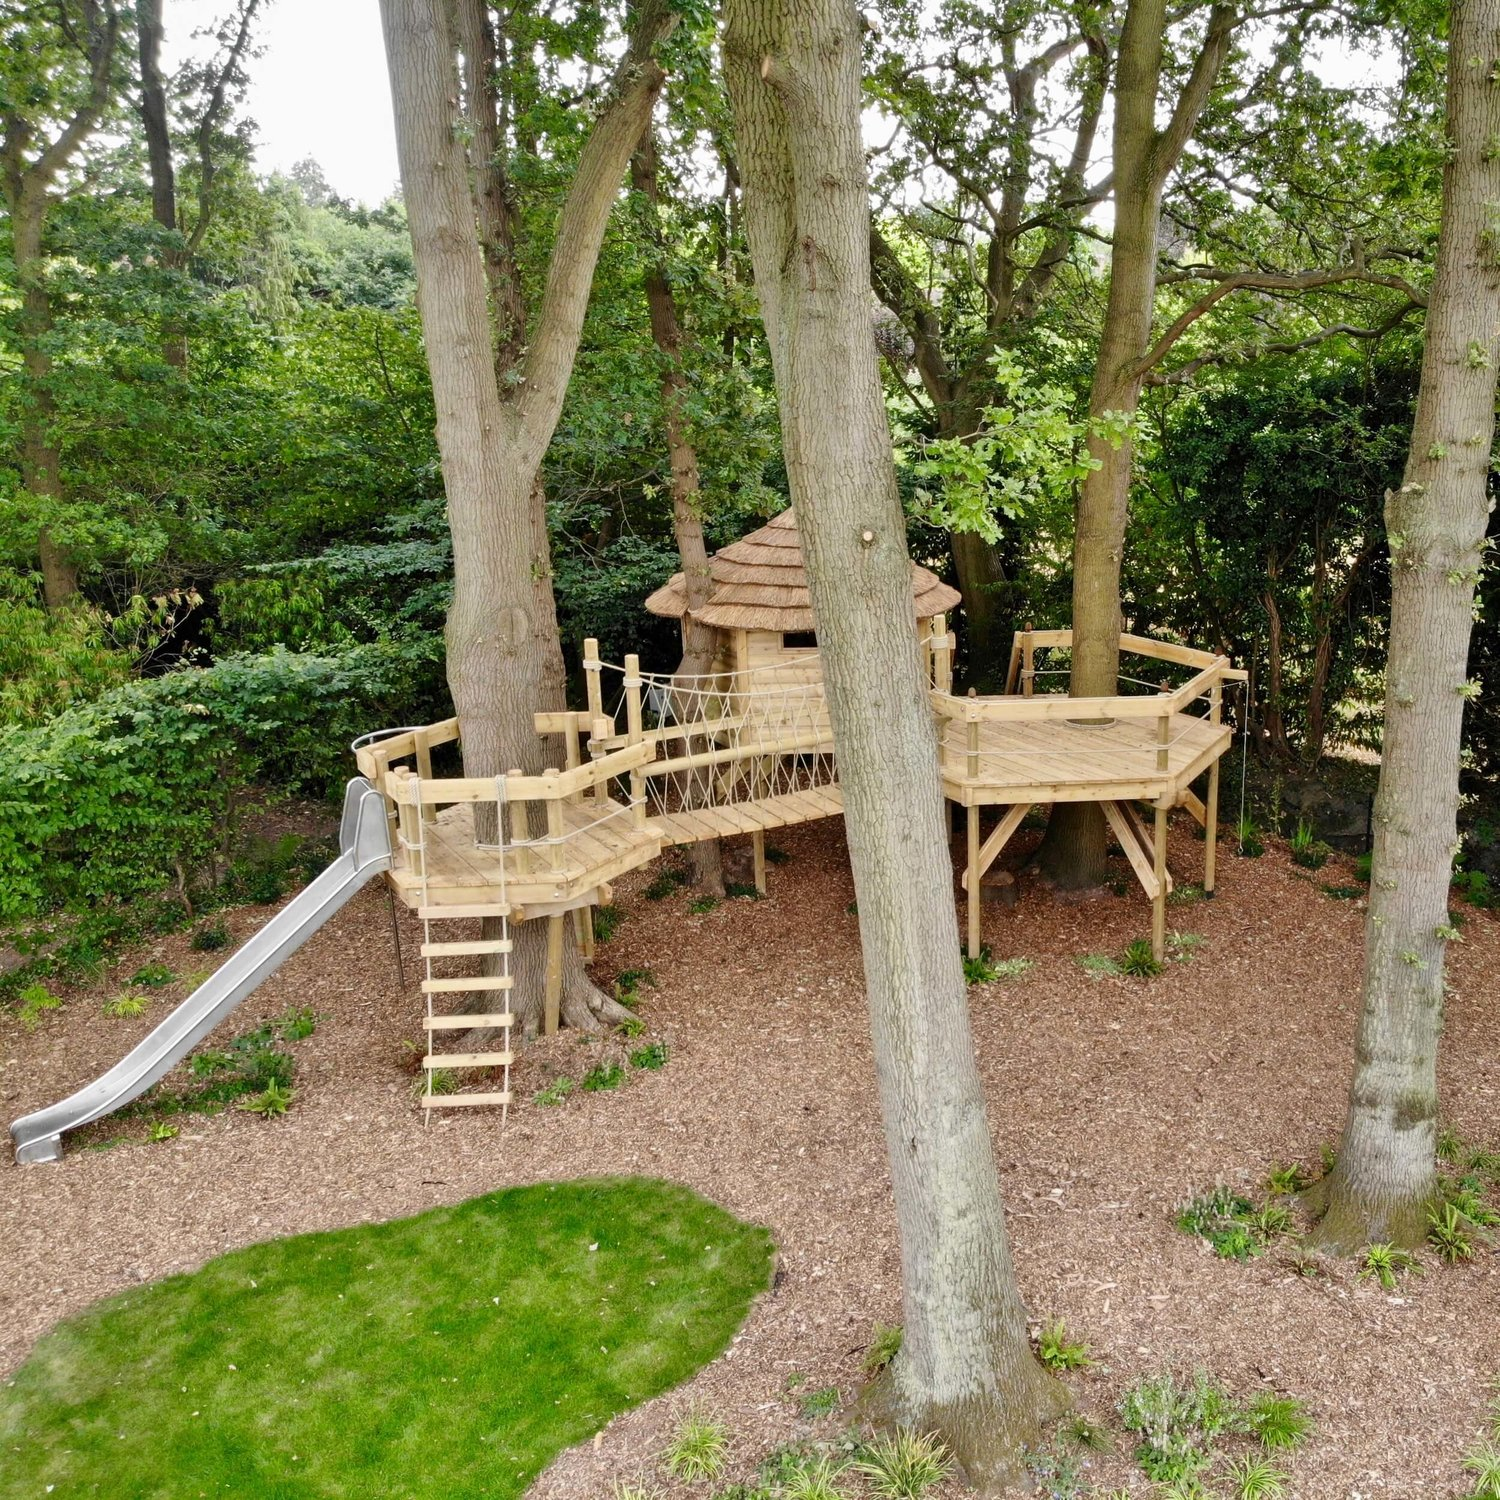 Treehouse Rope Bridge Landscape Garden Project Rope